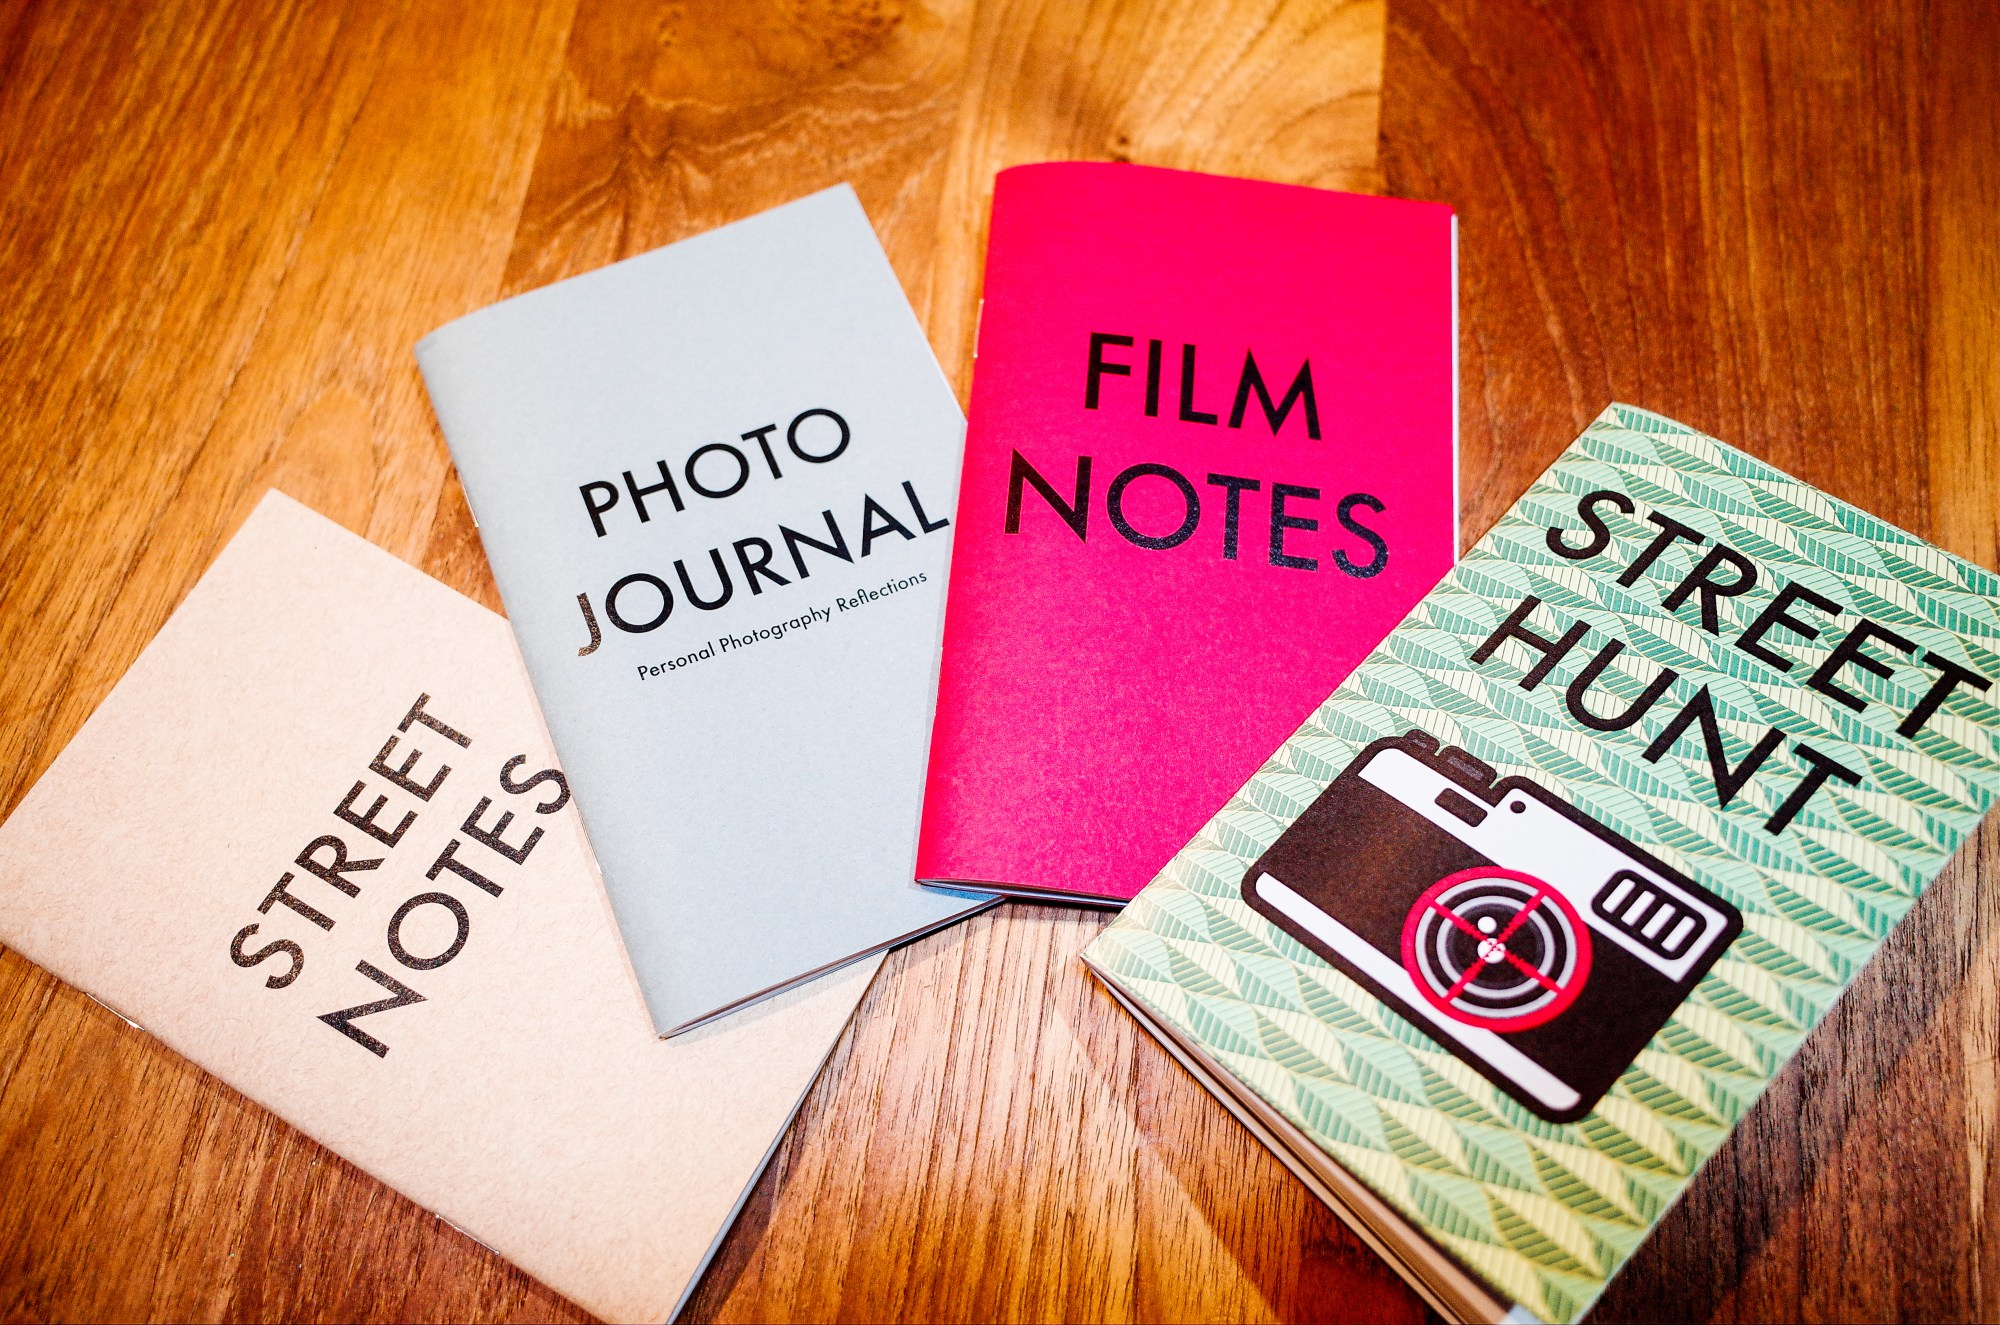 STREET NOTES, PHOTO JOURNAL, FILM NOTES, STREET HUNT